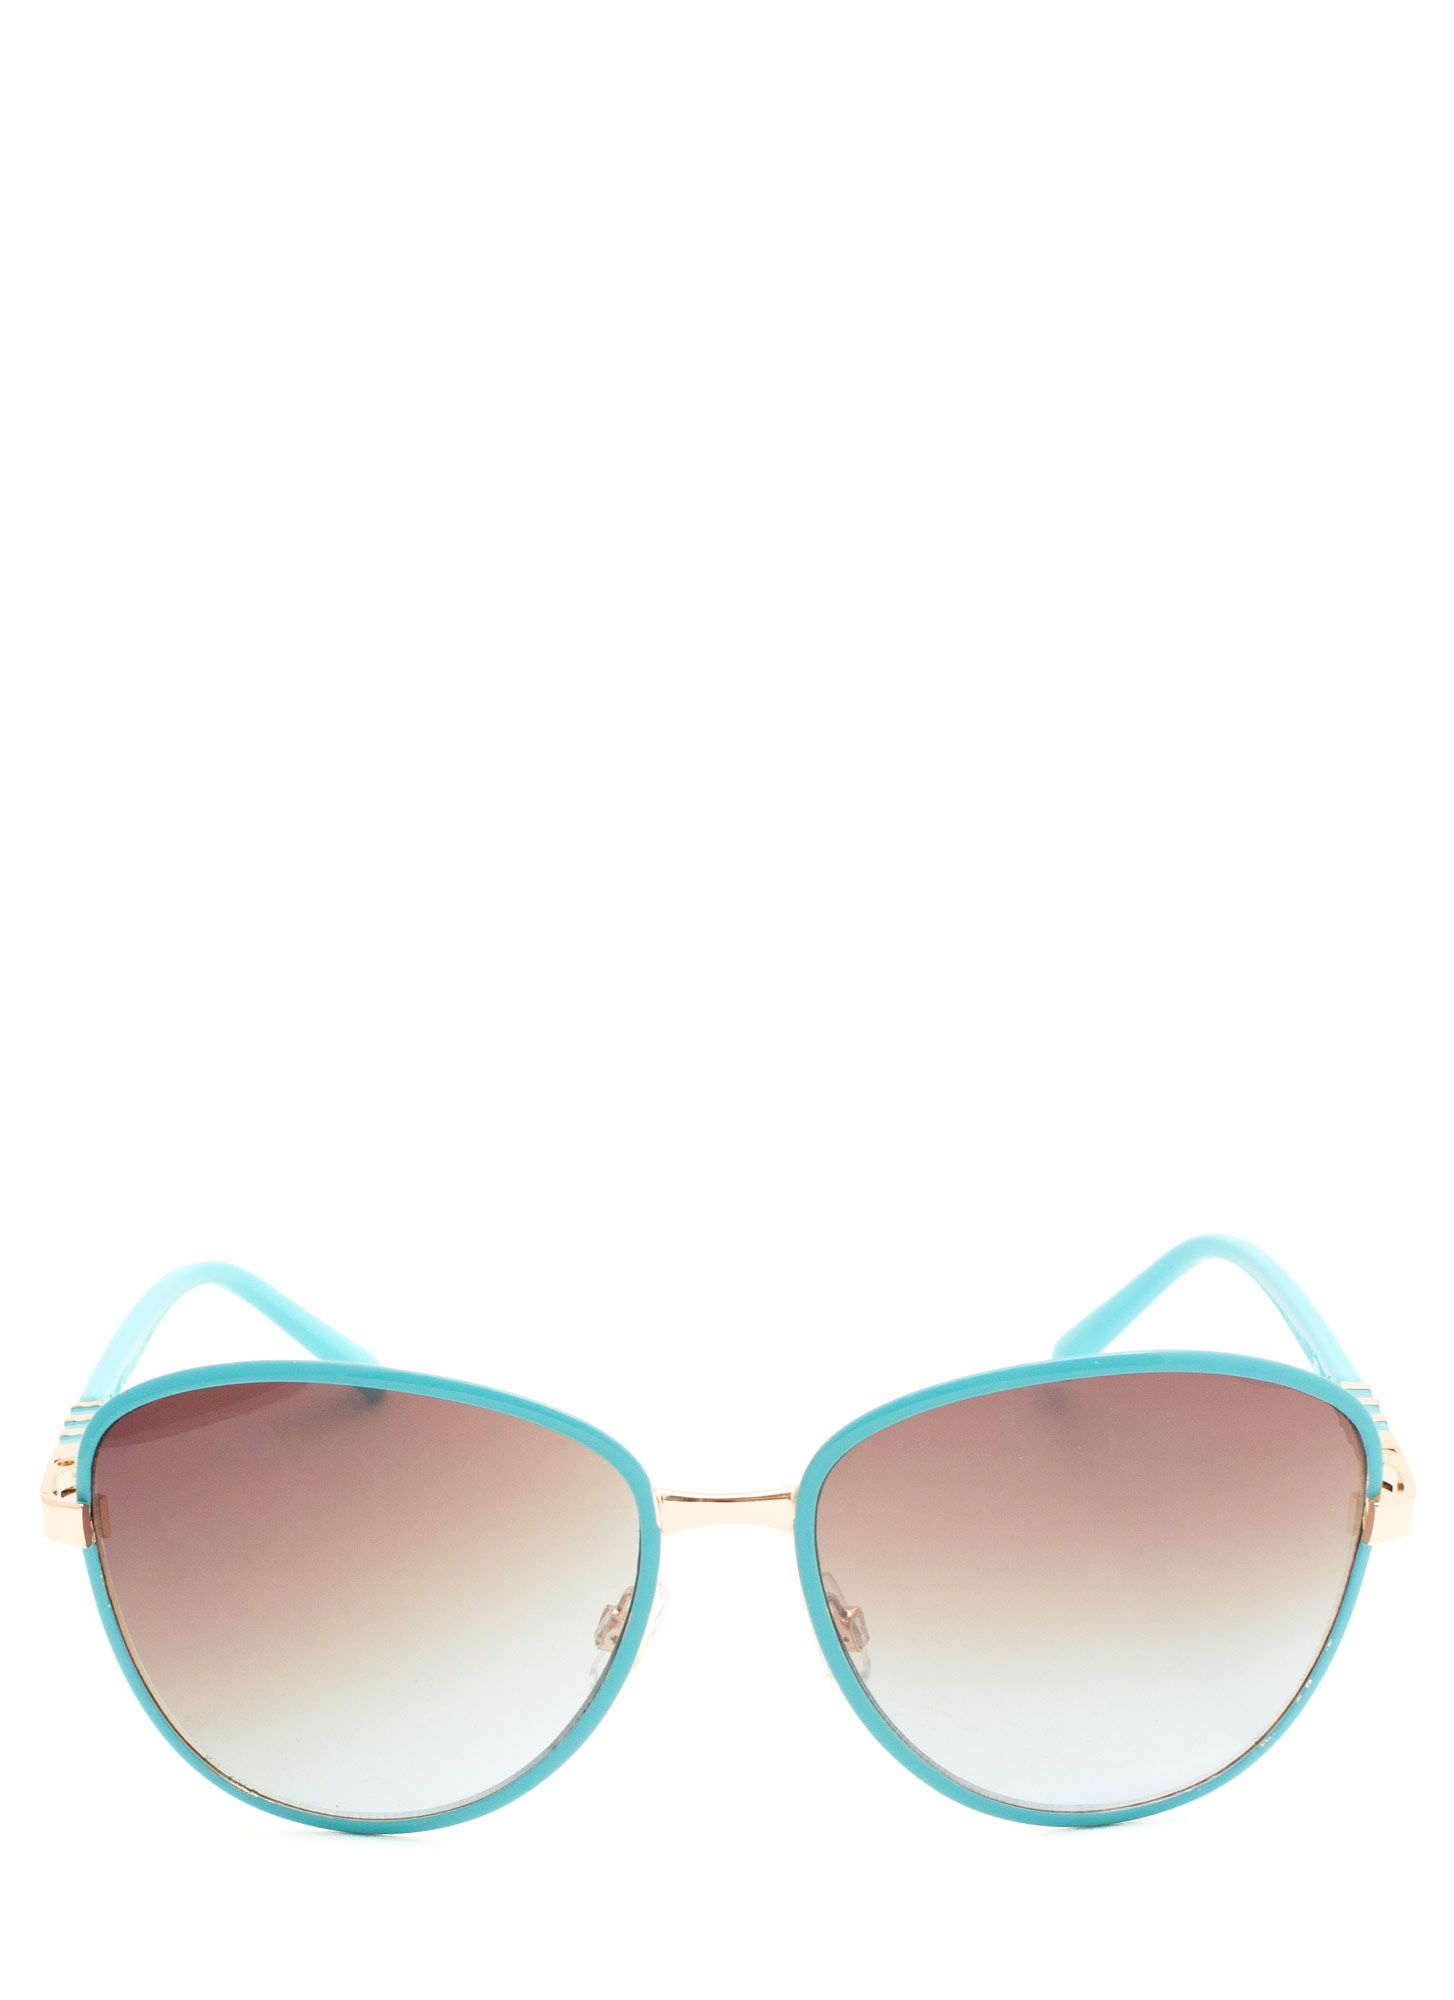 Touch Of Metallic Sunglasses  TURQUOISE